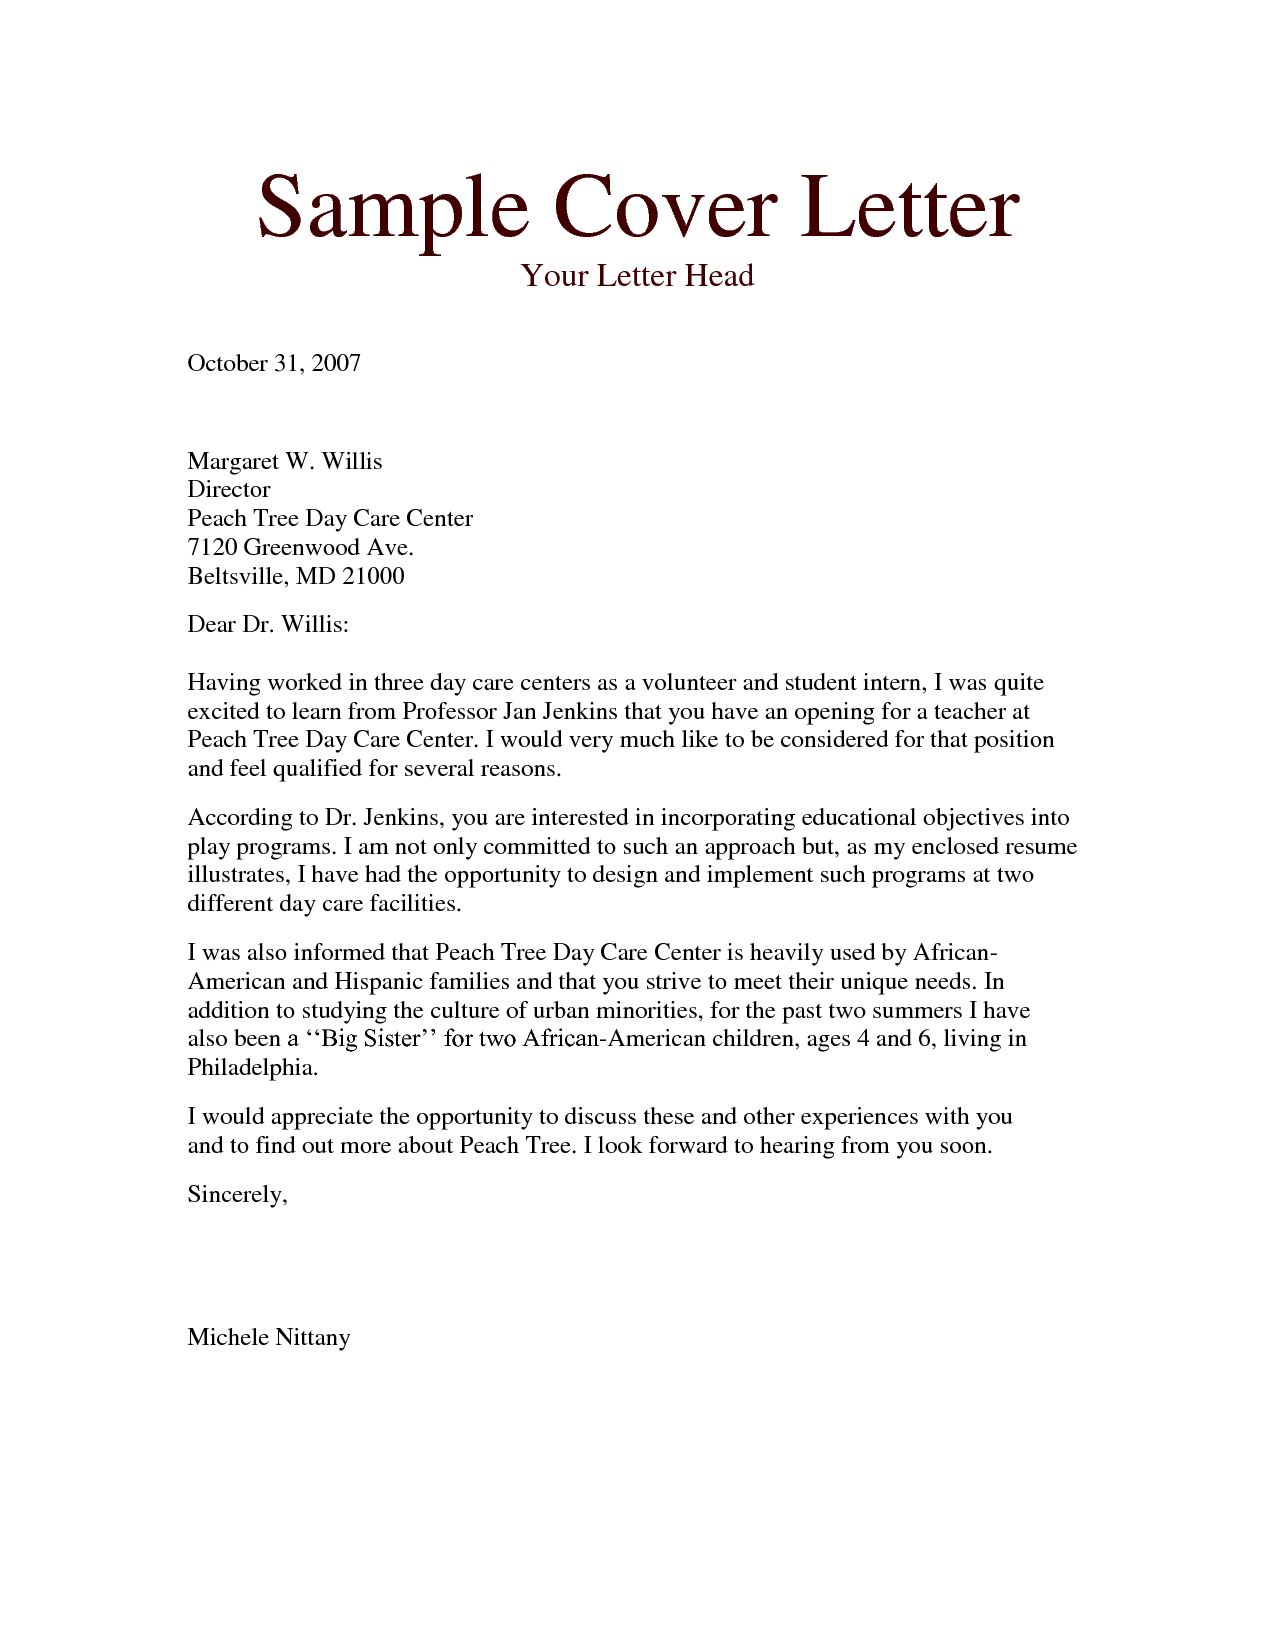 Writing A Cover Letter For Executive Assistant. How To Write A Cover Letter.  Cover Letters. As Much As They Require More Work, Cover Letters Are A Great  ...